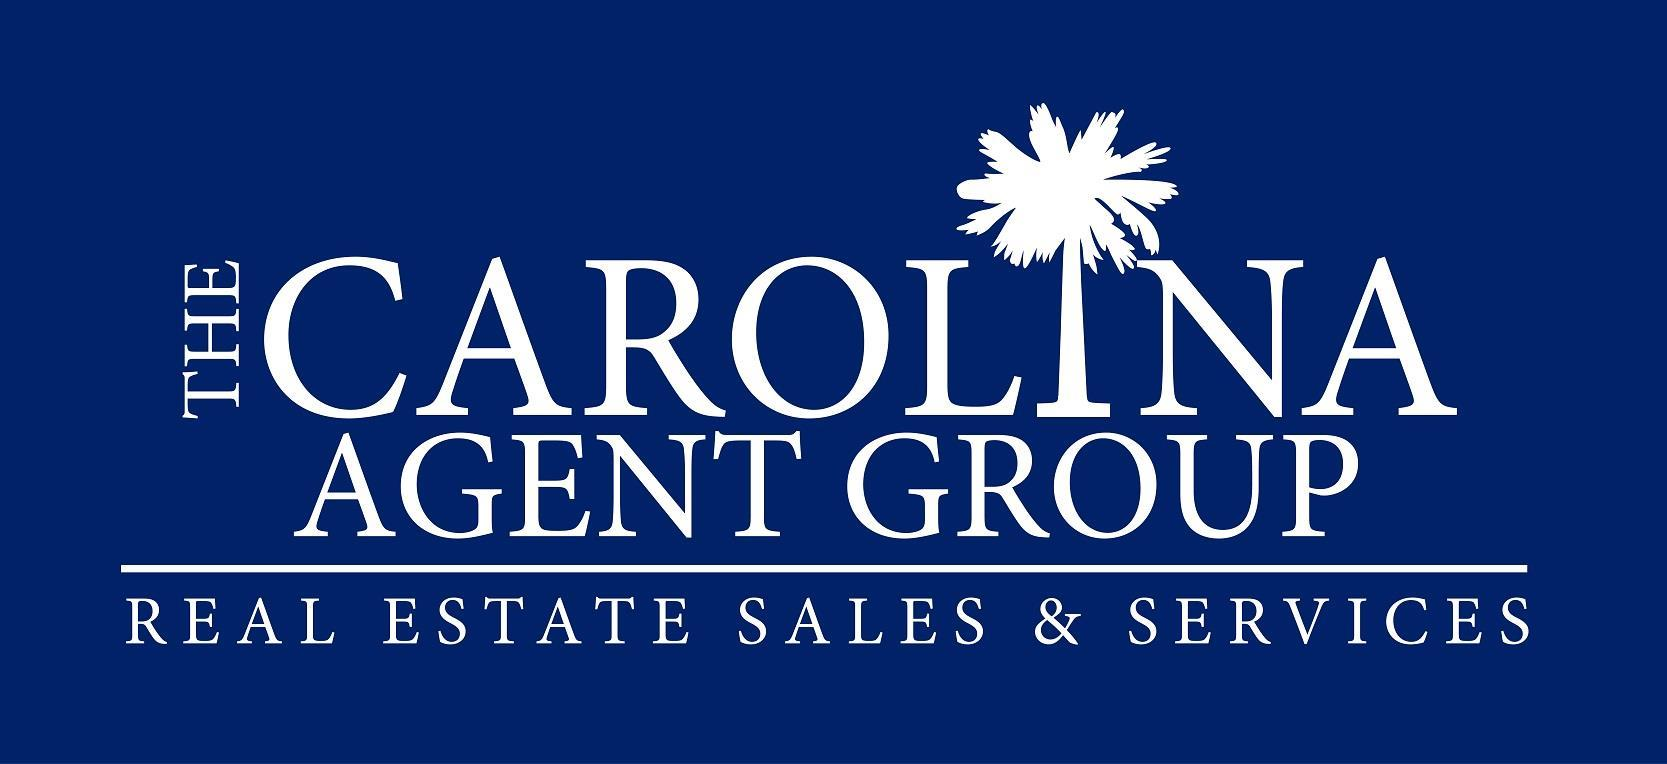 The Carolina Agent Group